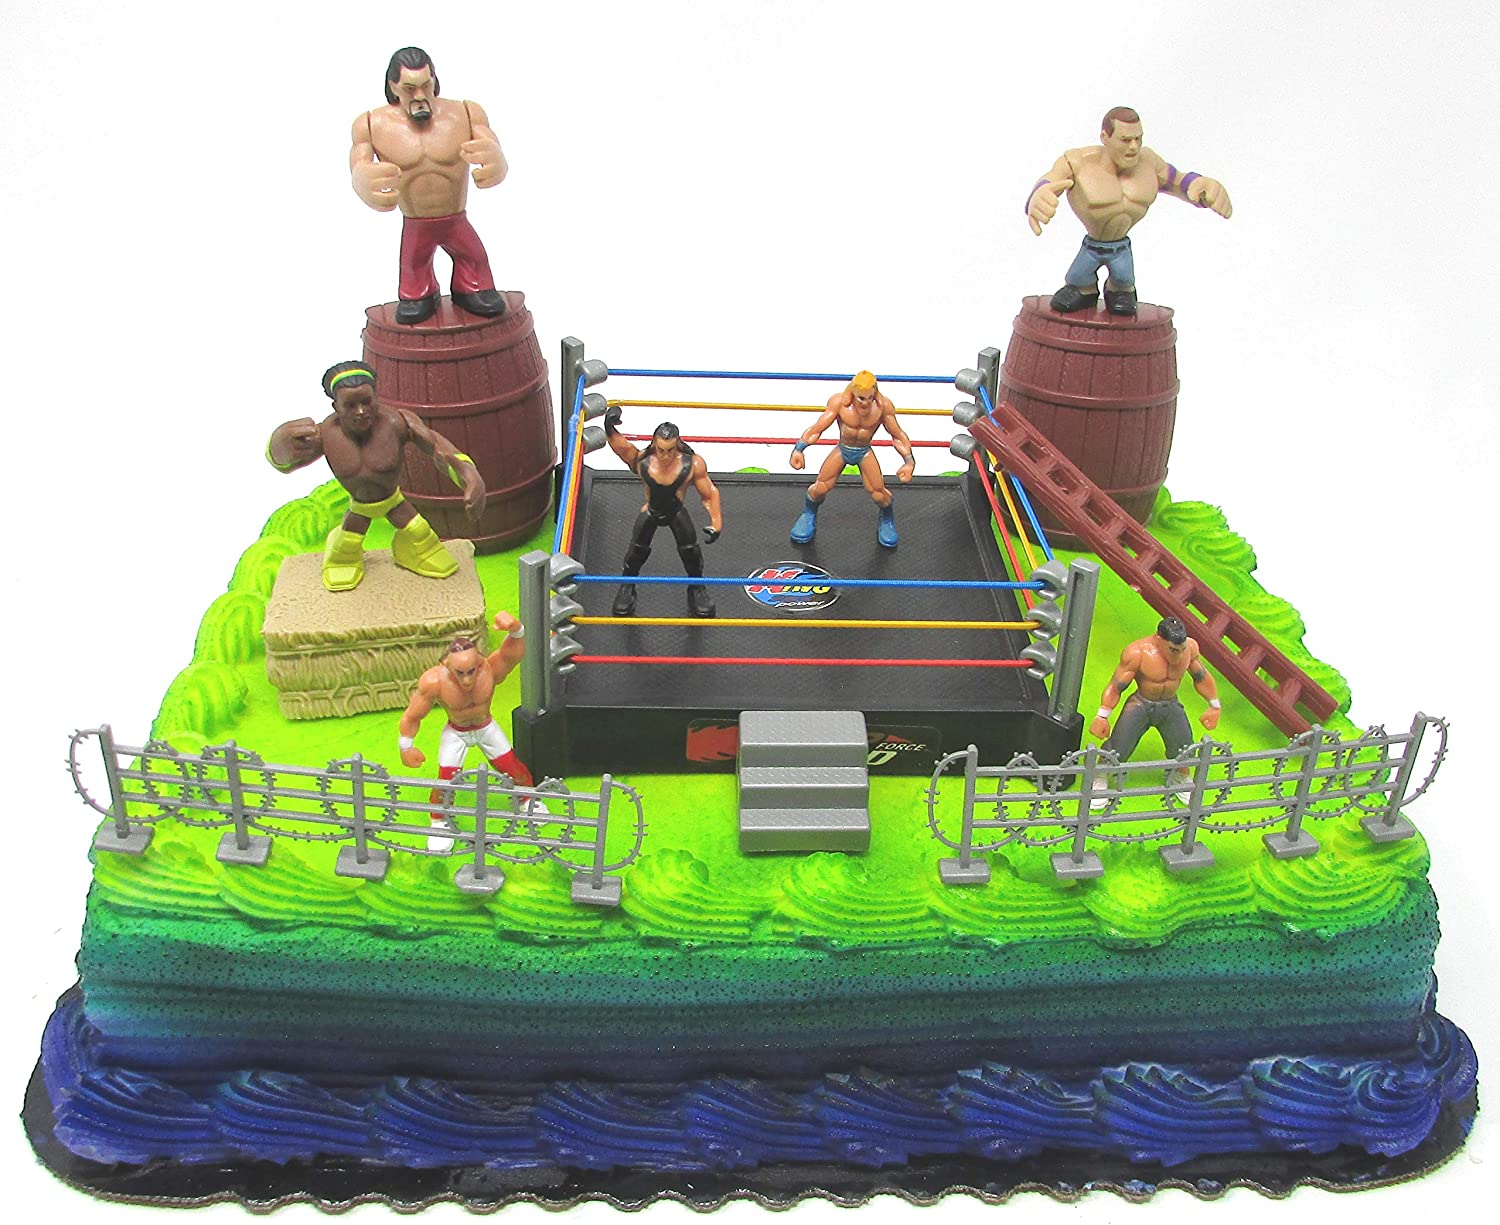 Pleasant Amazon Com Wwe Deluxe Birthday Cake Topper Wrestler Rumblers Personalised Birthday Cards Cominlily Jamesorg